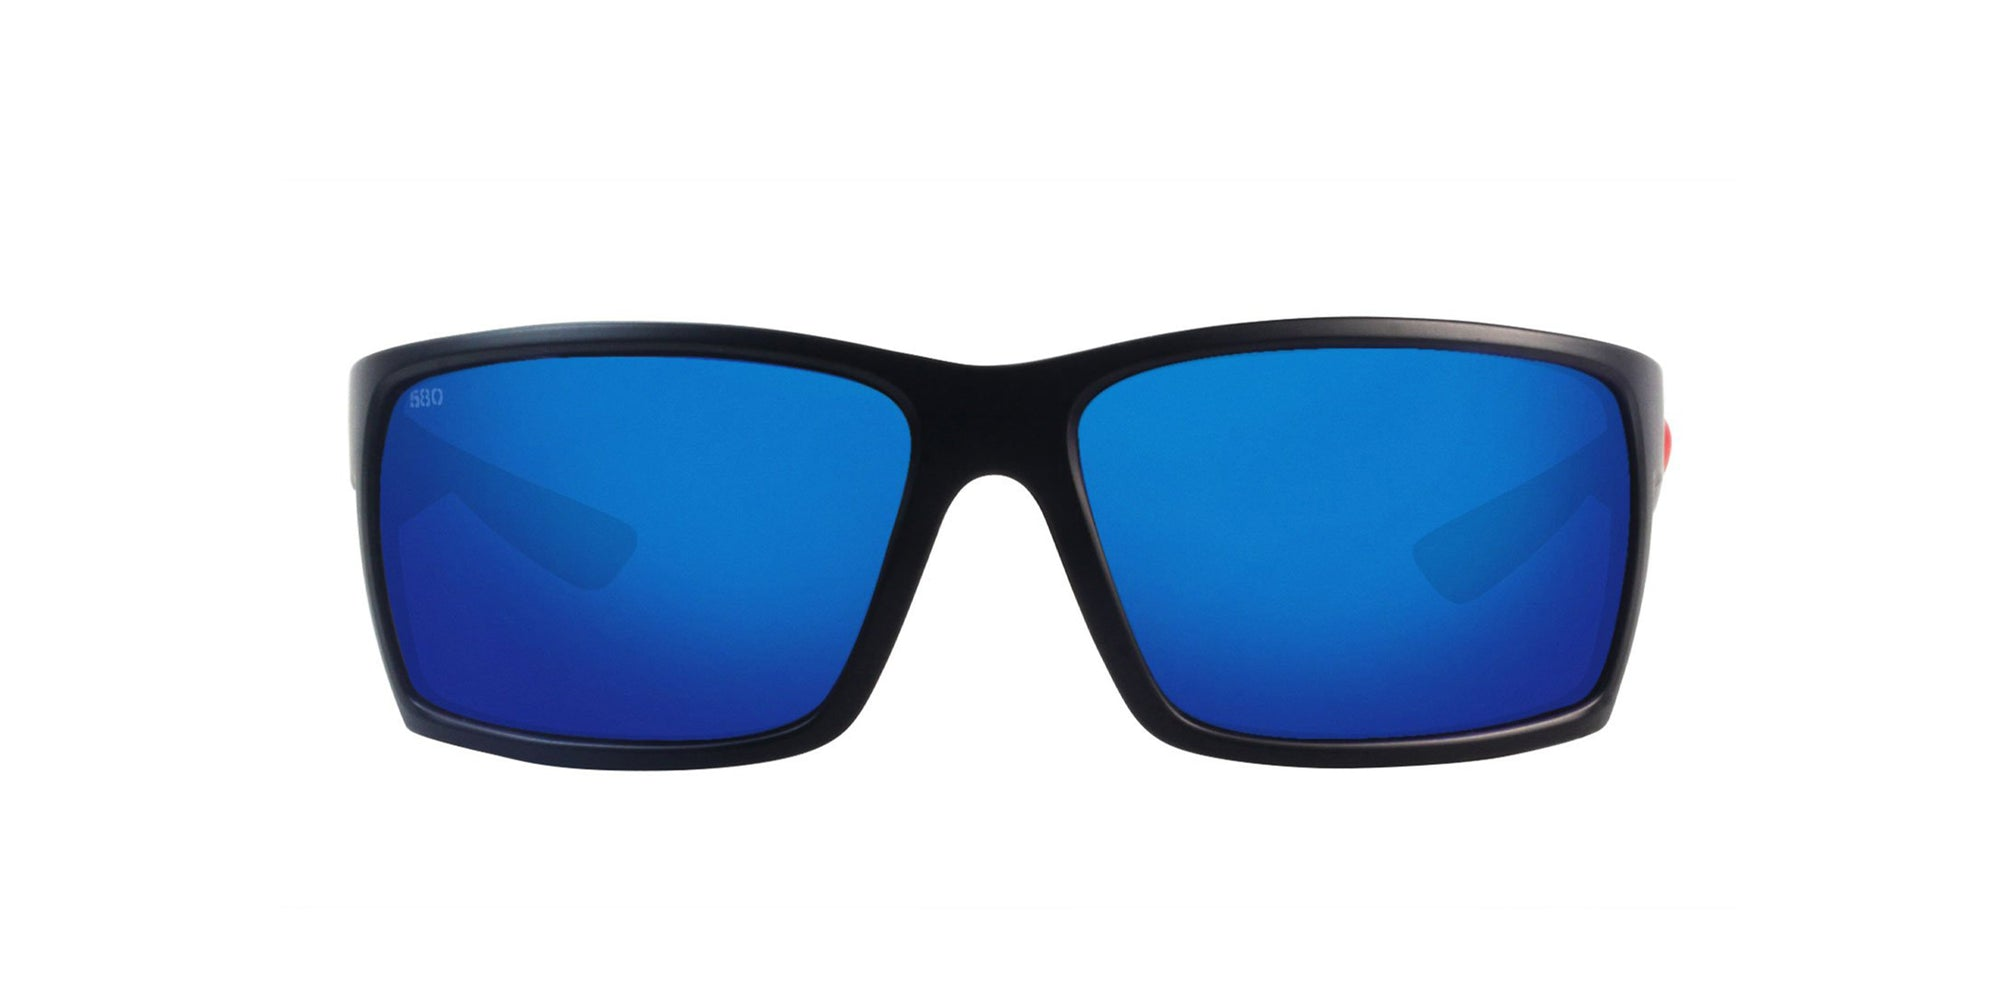 Costa Del Mar - Reefton Black/Blue Mirror Polarized Rectangular Unisex Sunglasses